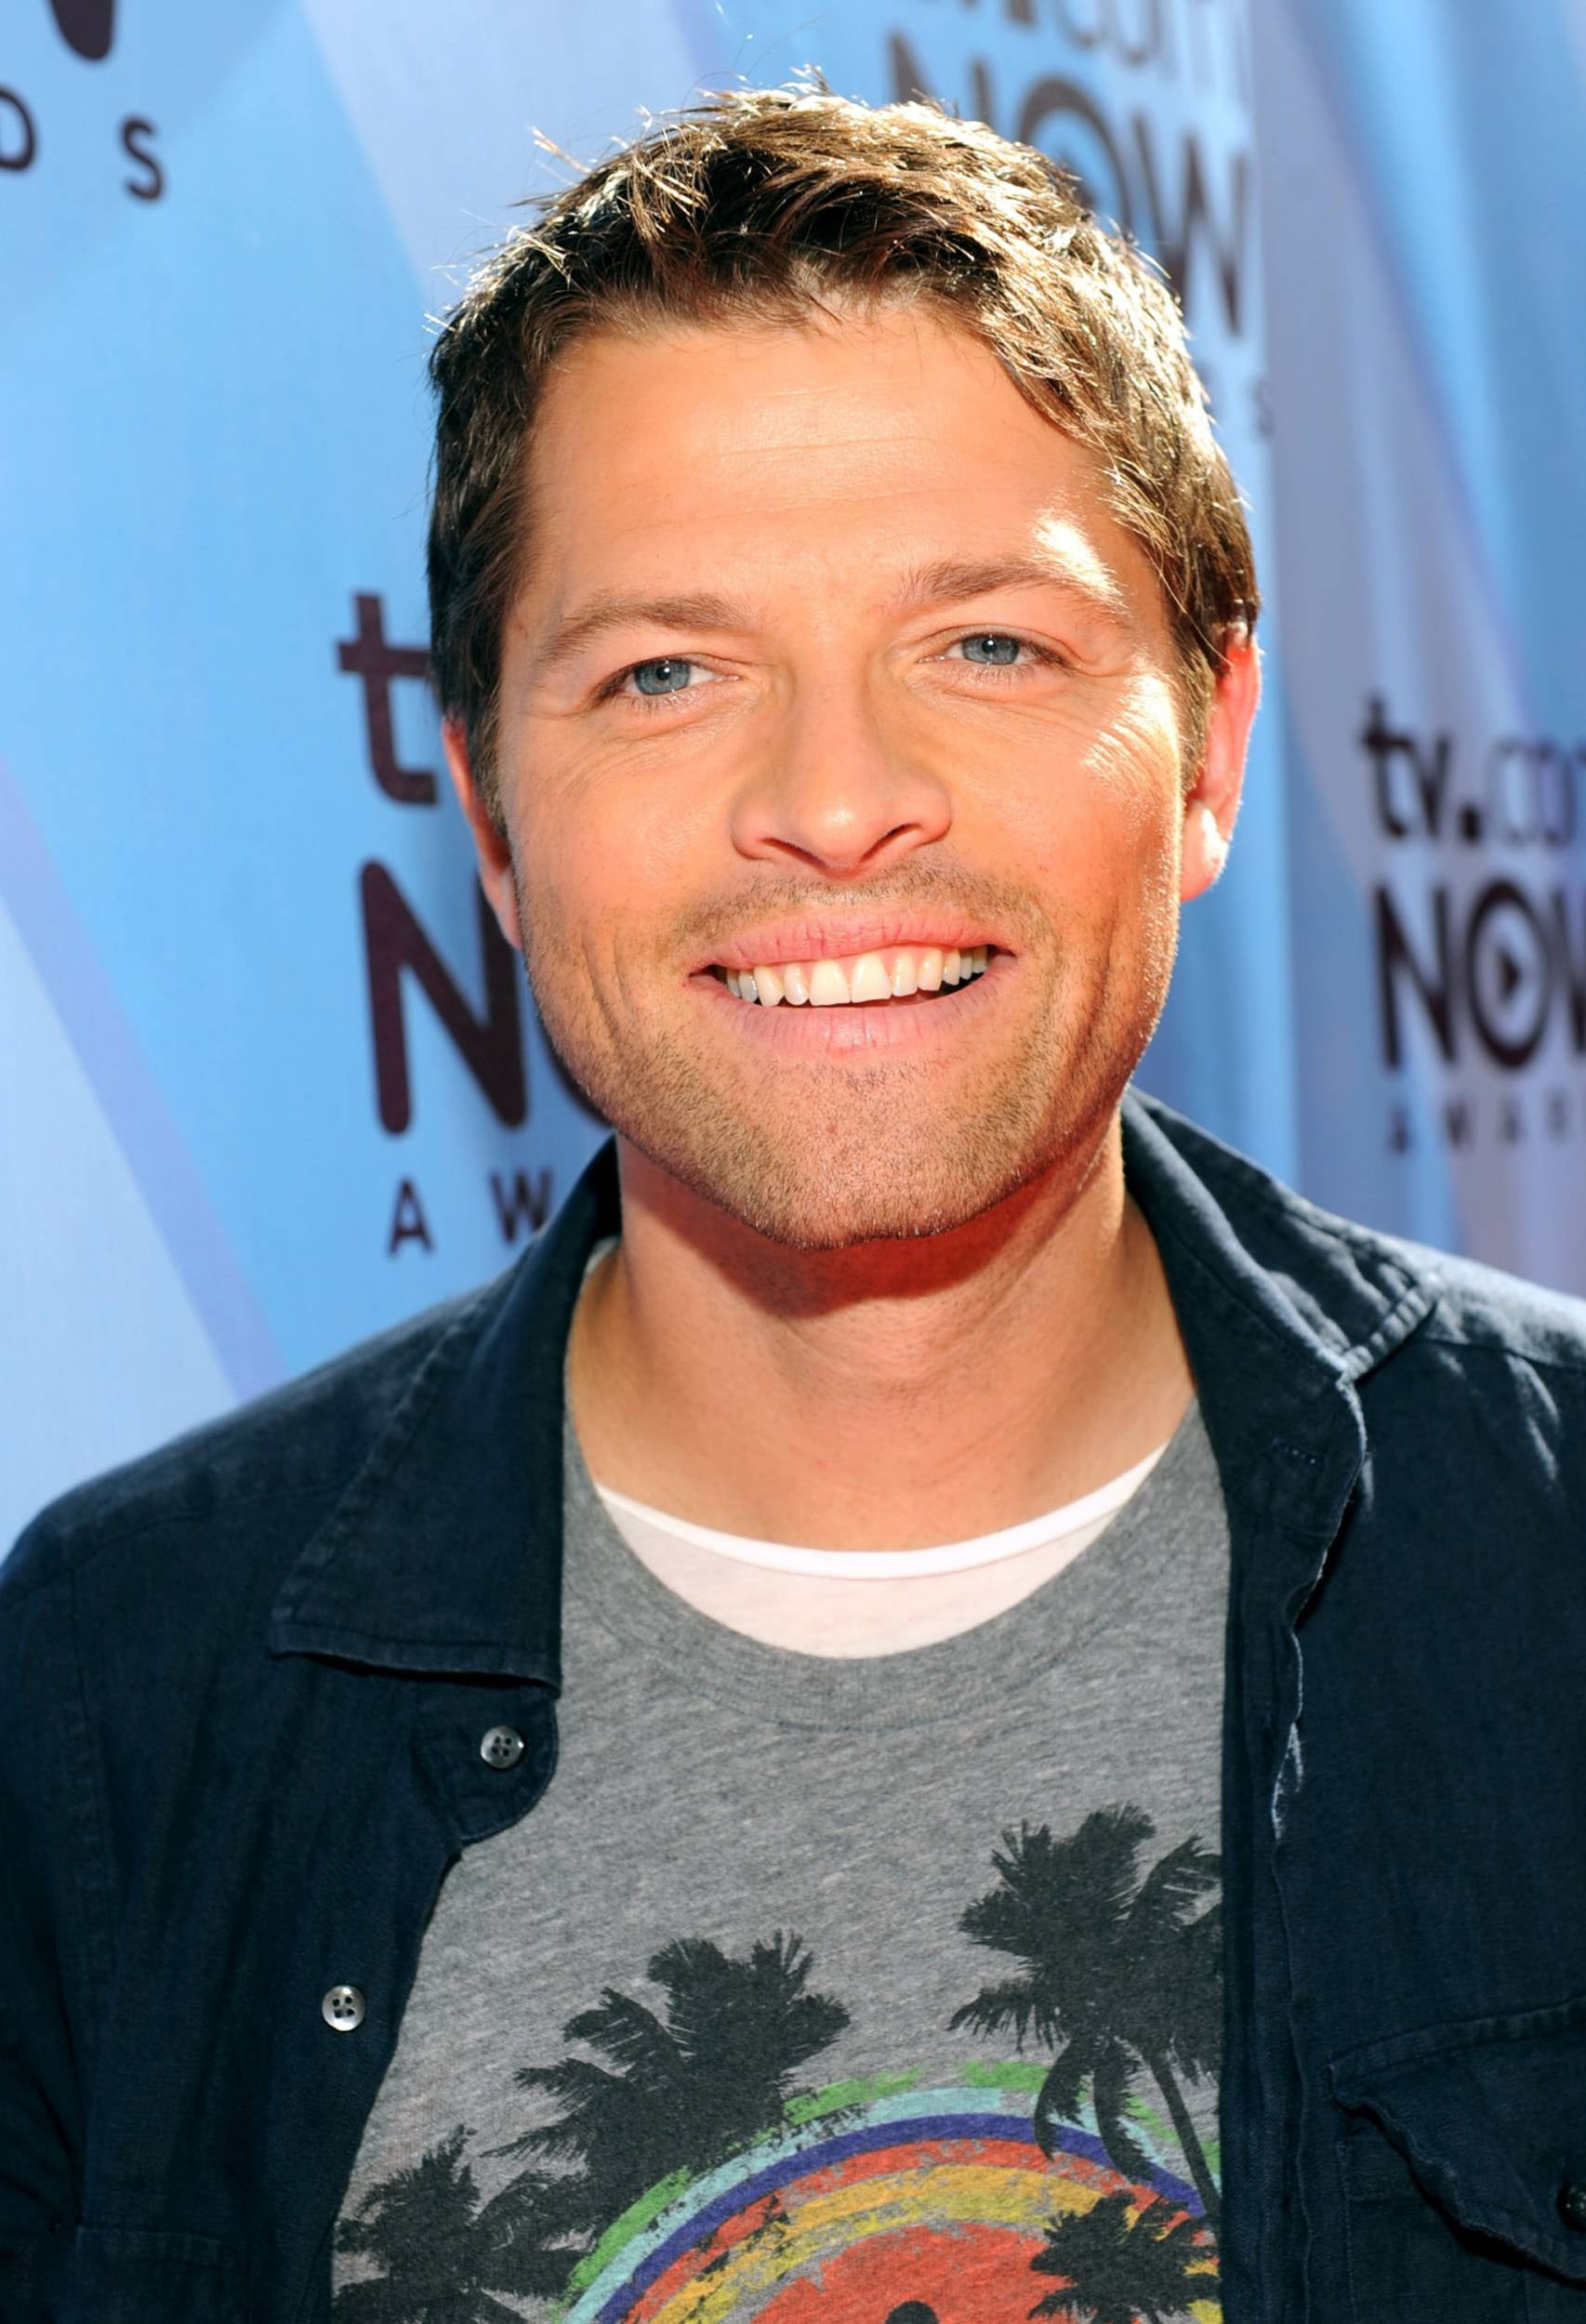 Misha Collins Full hd wallpapers